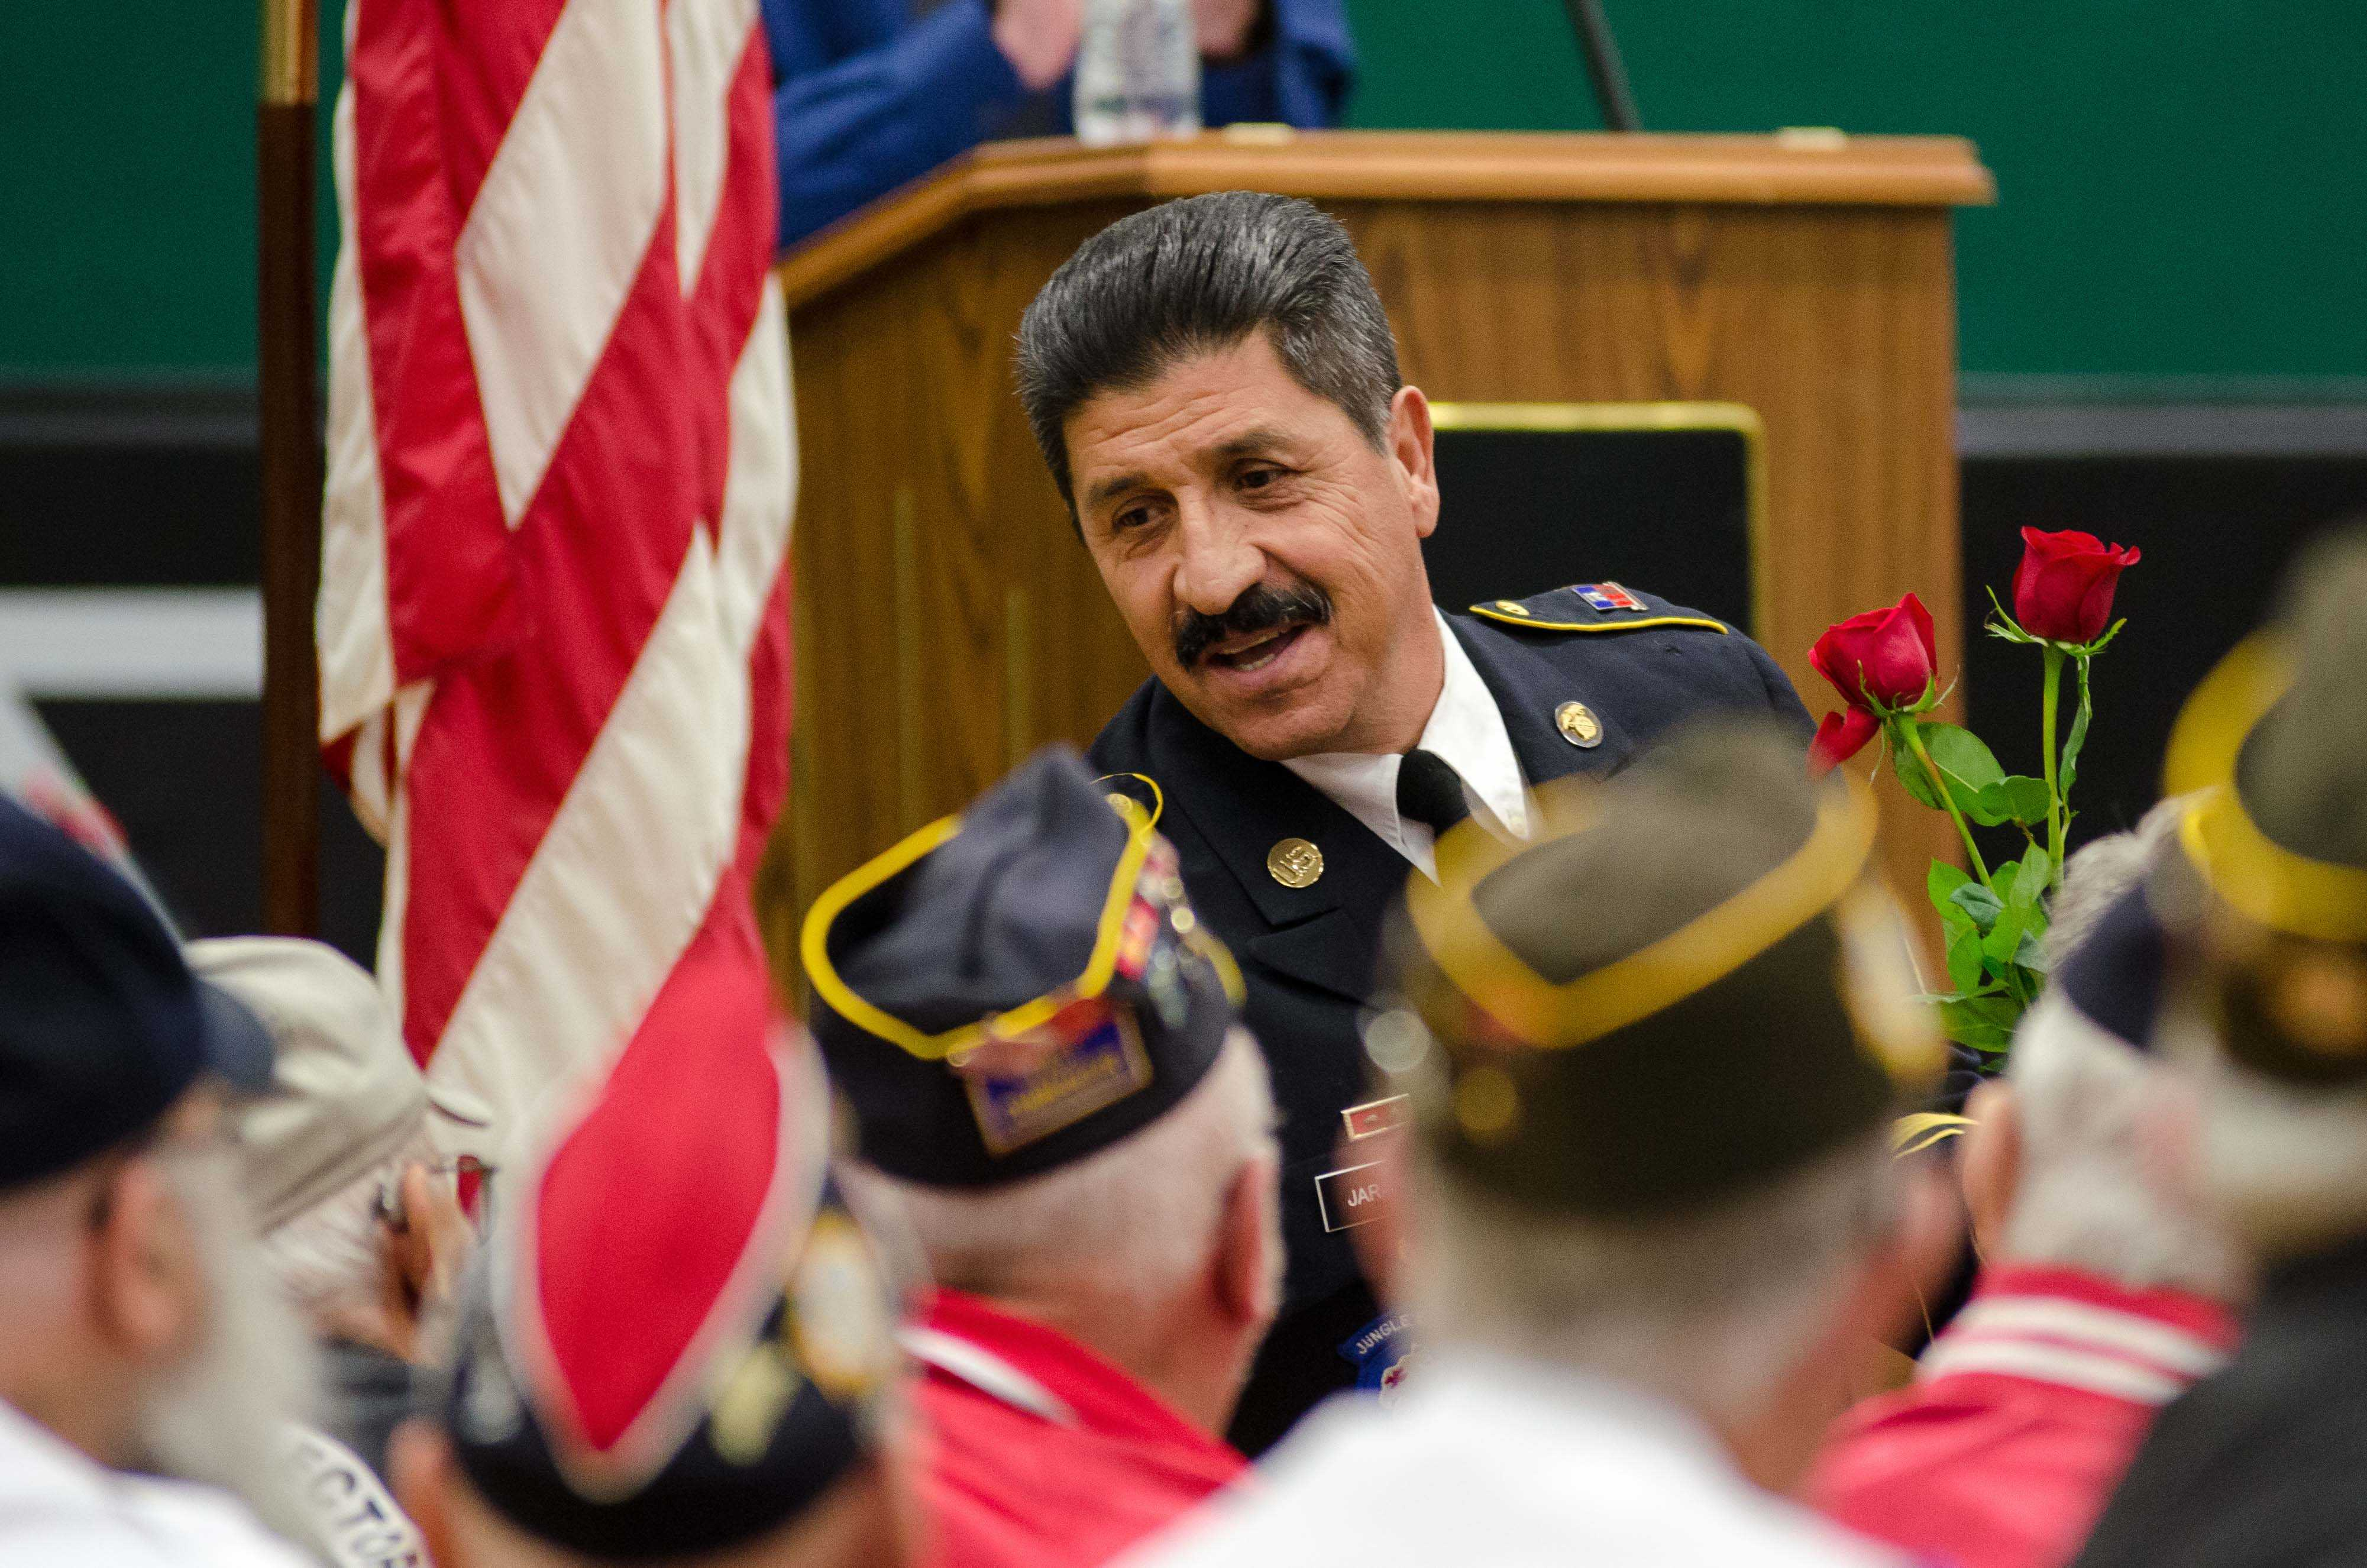 Gus Jaramillo shakes hands with some of the veterans in the audience of the annual Veterans Day Assembly. There were around 75 veterans in attendance.